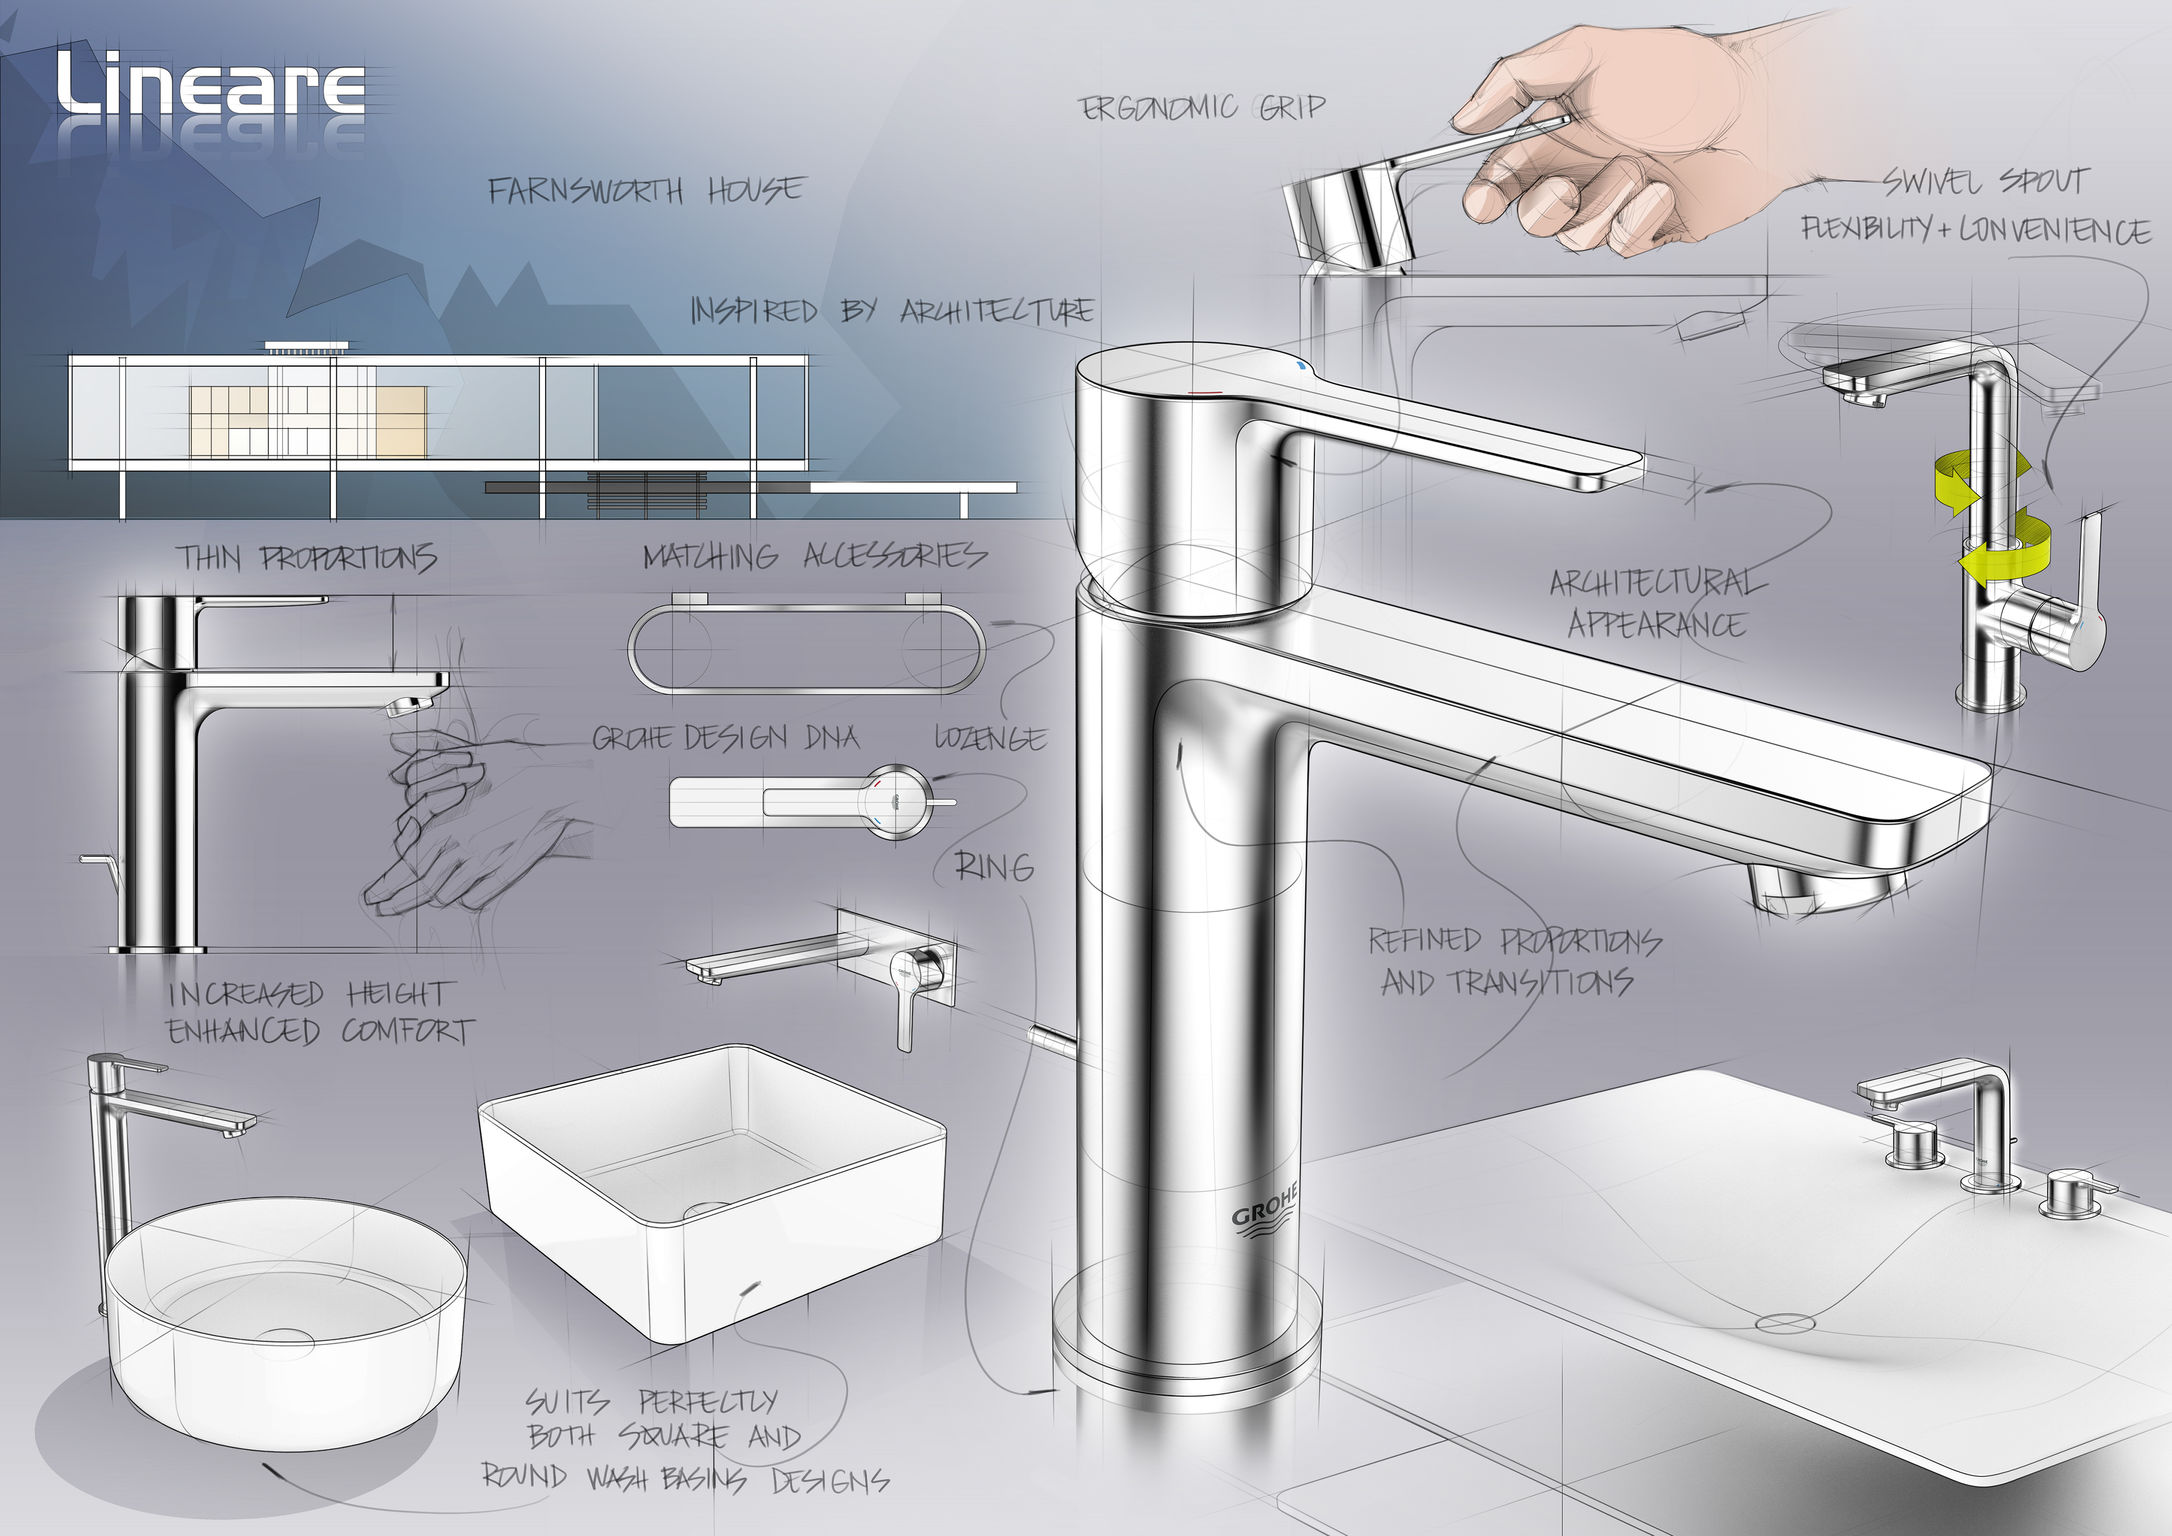 Grohe - iF WORLD DESIGN GUIDE